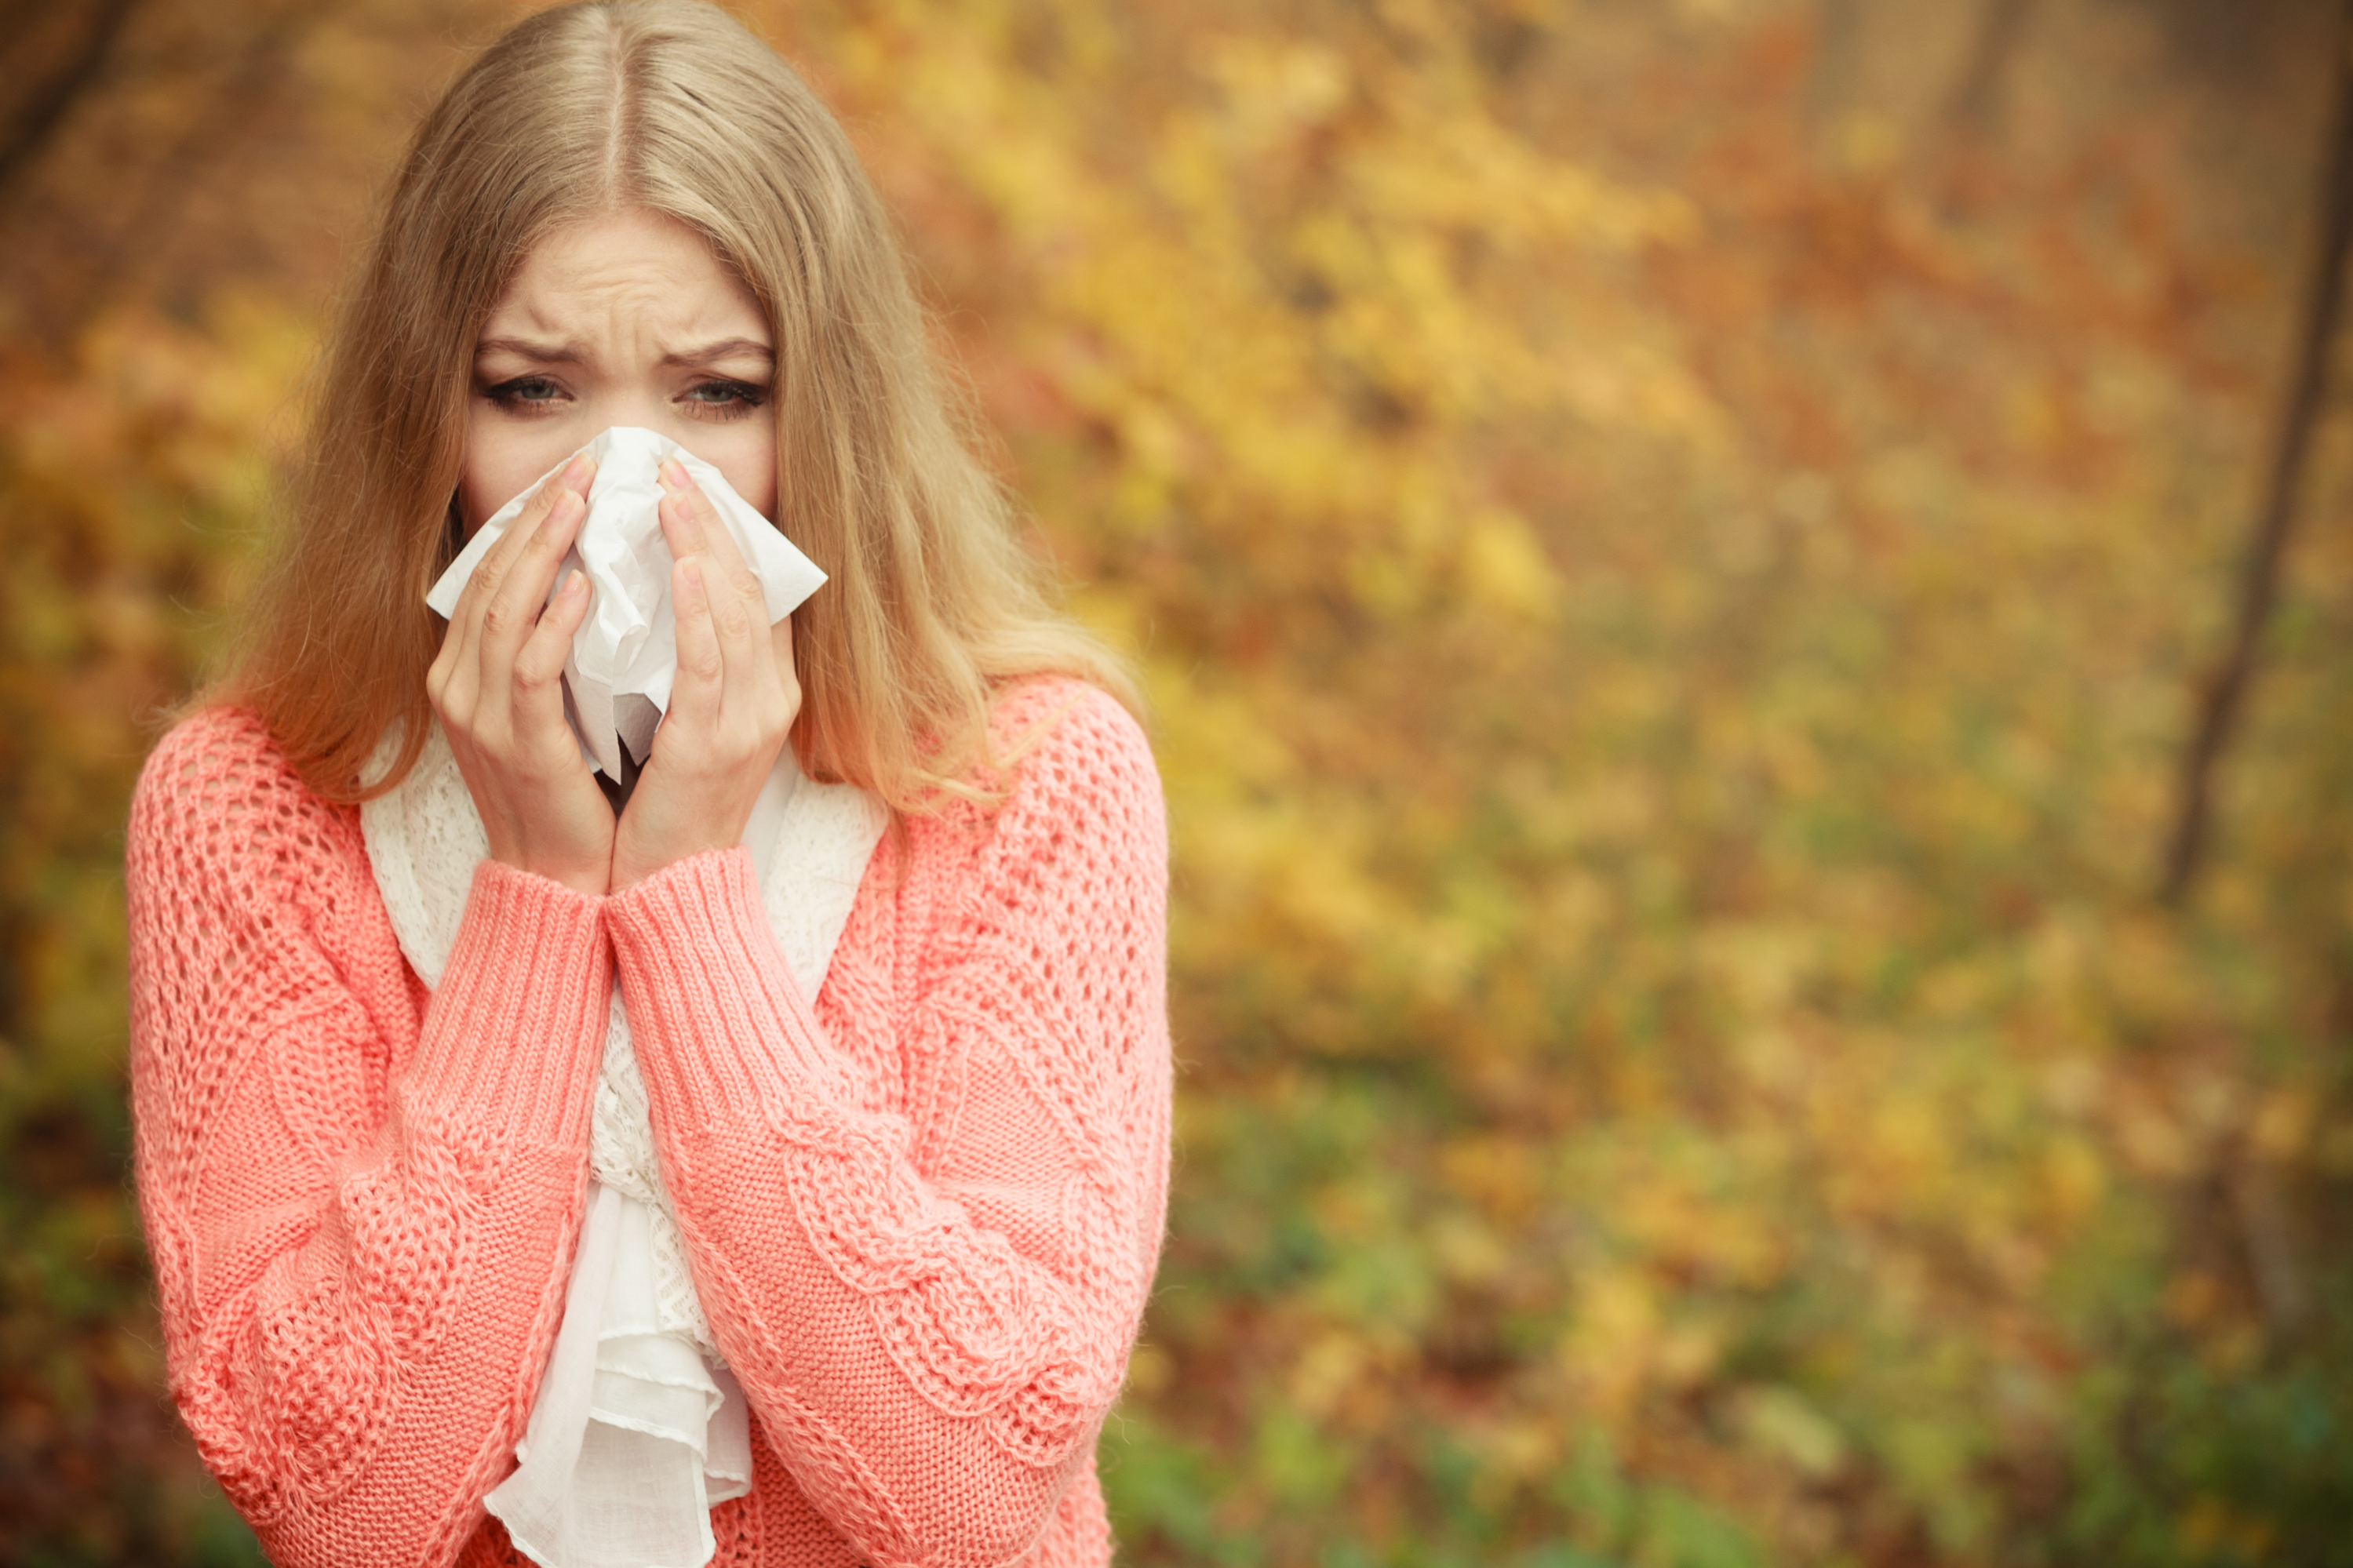 Balloon sinus dilation can provide you with relief from Fall allergies.